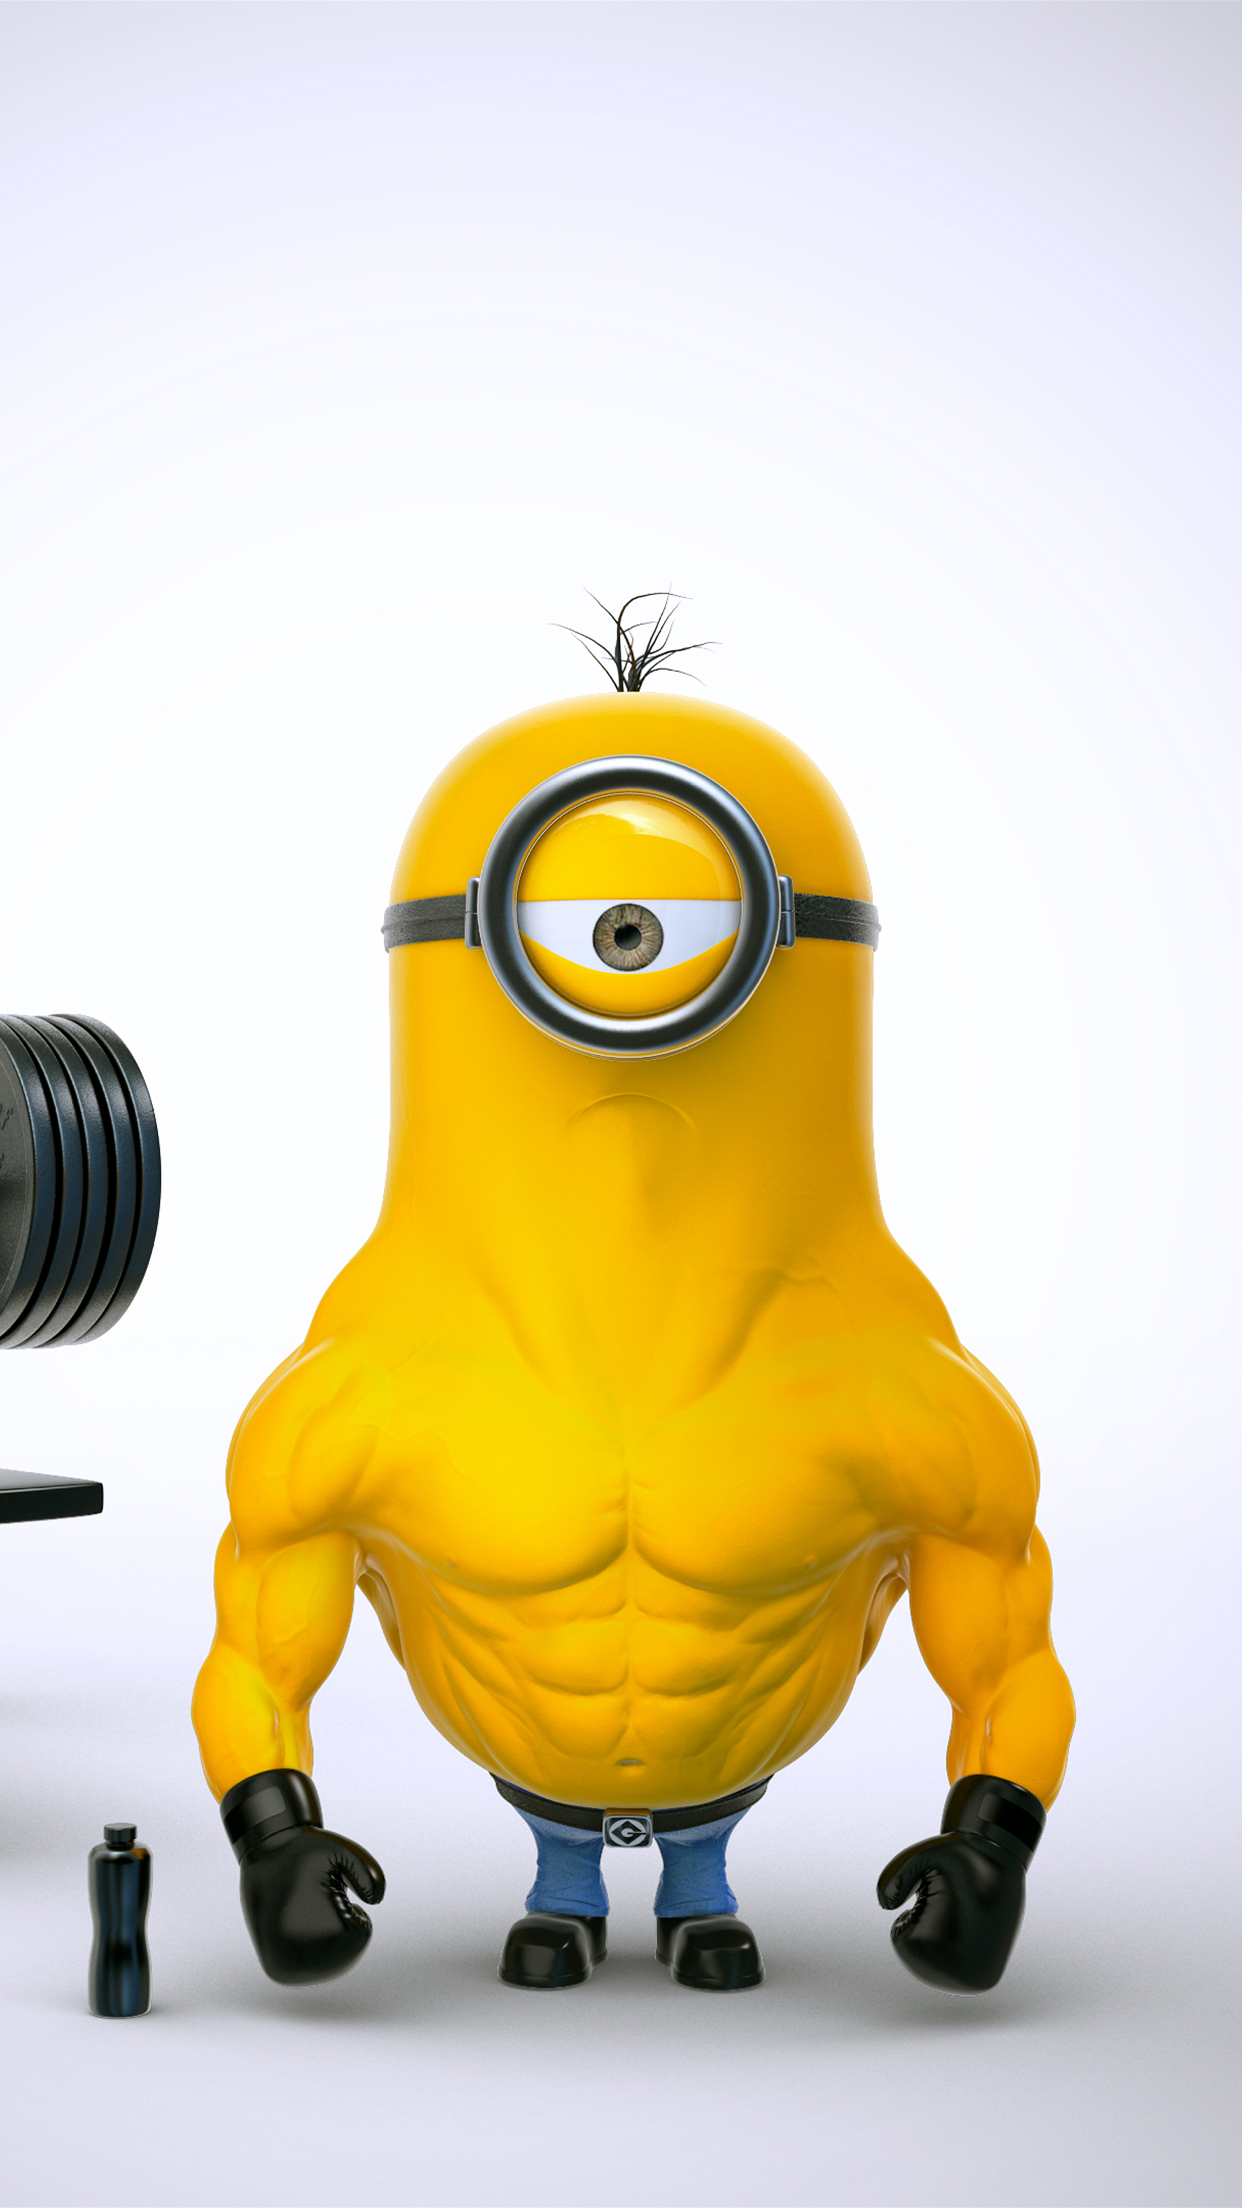 Papier Peint Minions Minion Muscle Wallpaper For Iphone X 8 7 6 Free